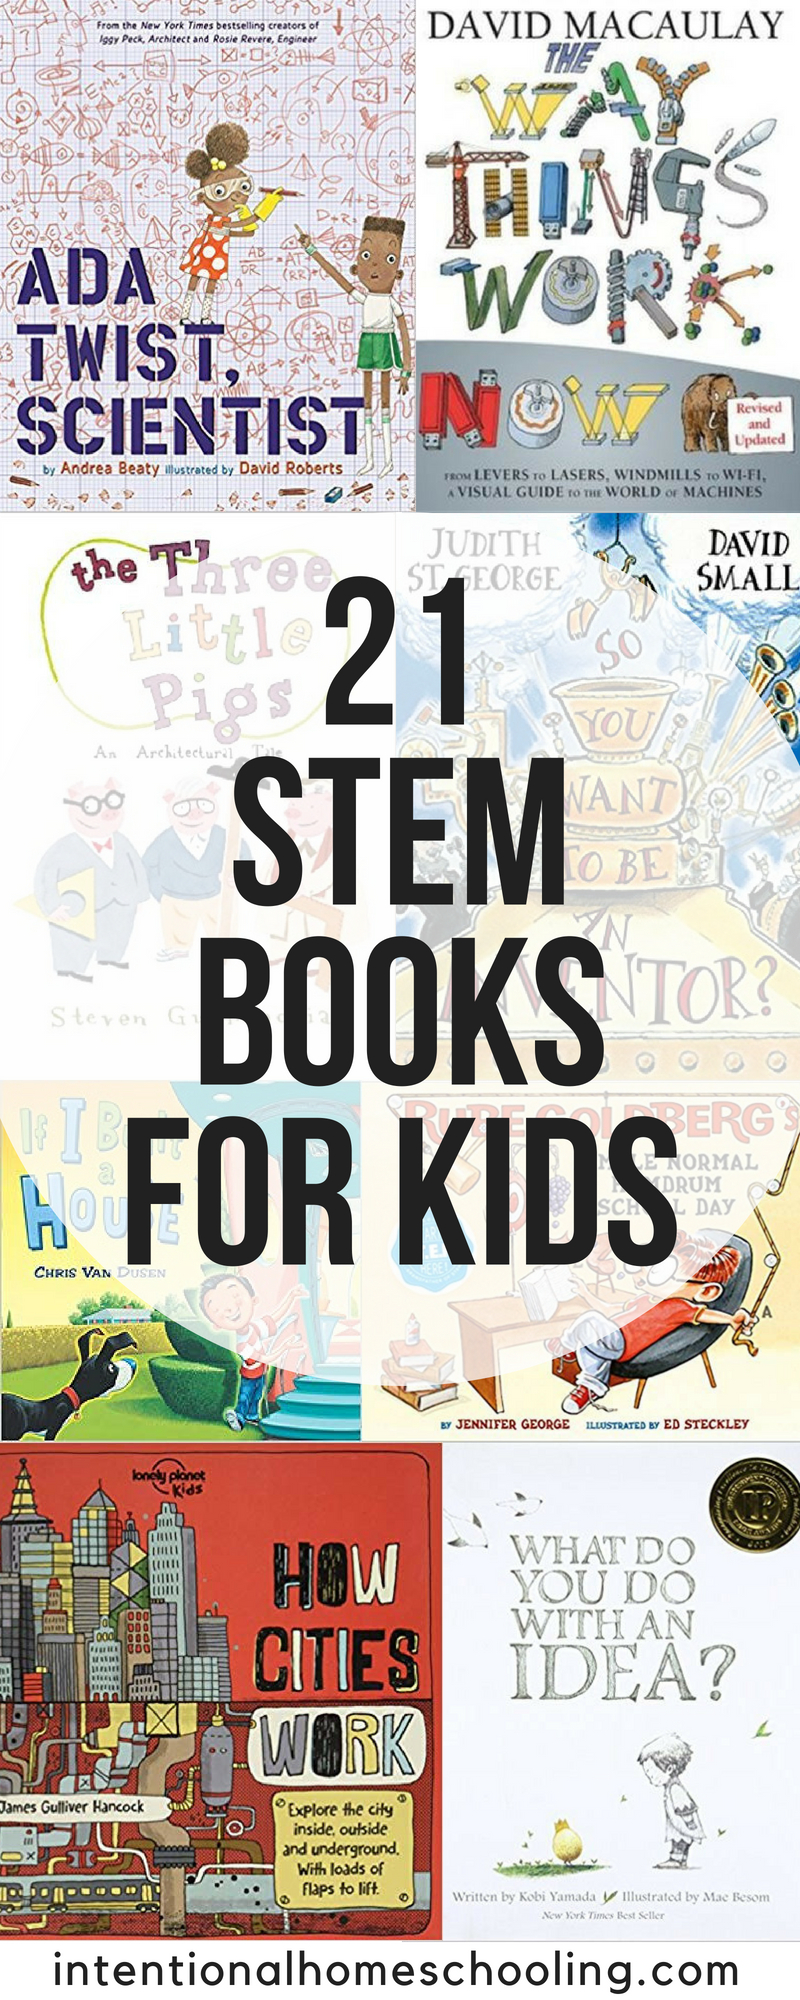 The best STEM books for kids, including picture books and non-fiction STEM books. A great way to get kids excited about Science, Technology, Engineering and Math!